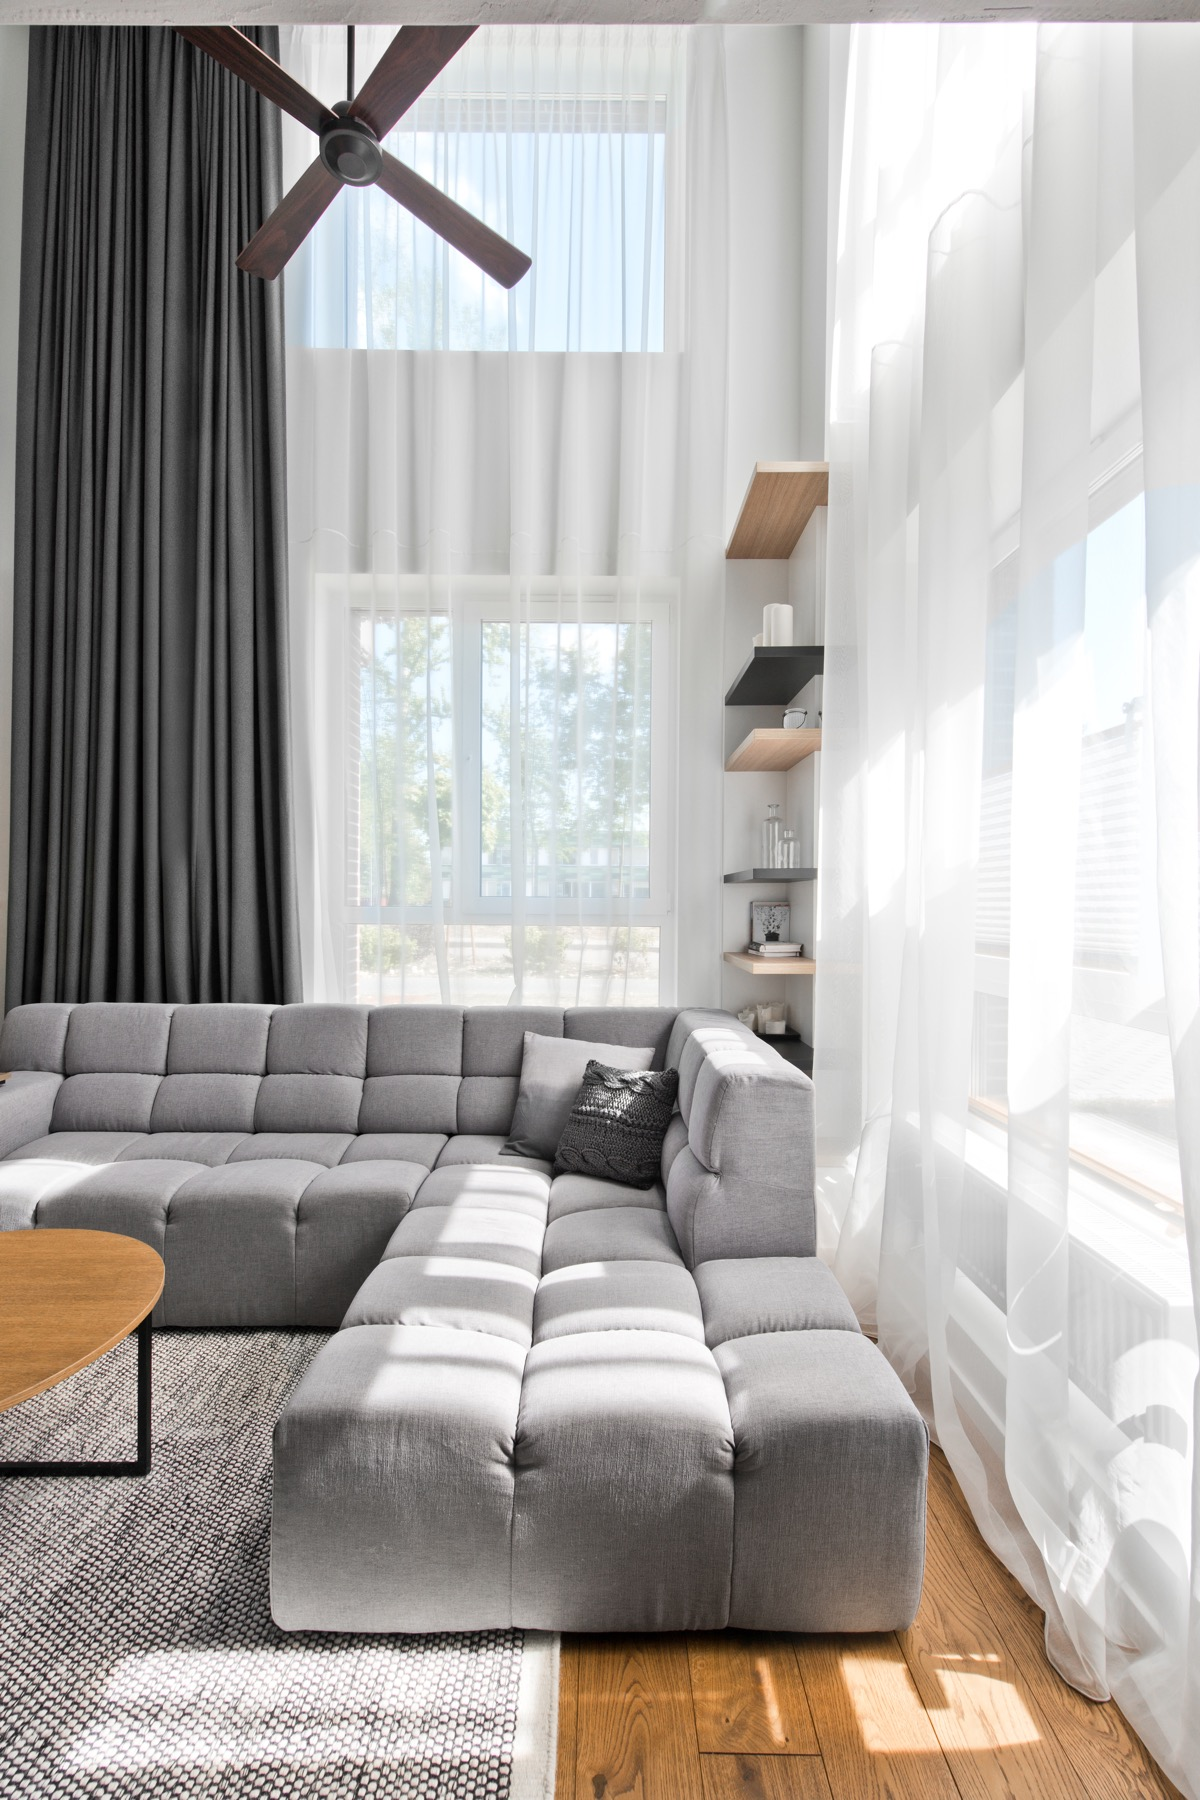 Tufted Sofa - Chic scandinavian loft interior